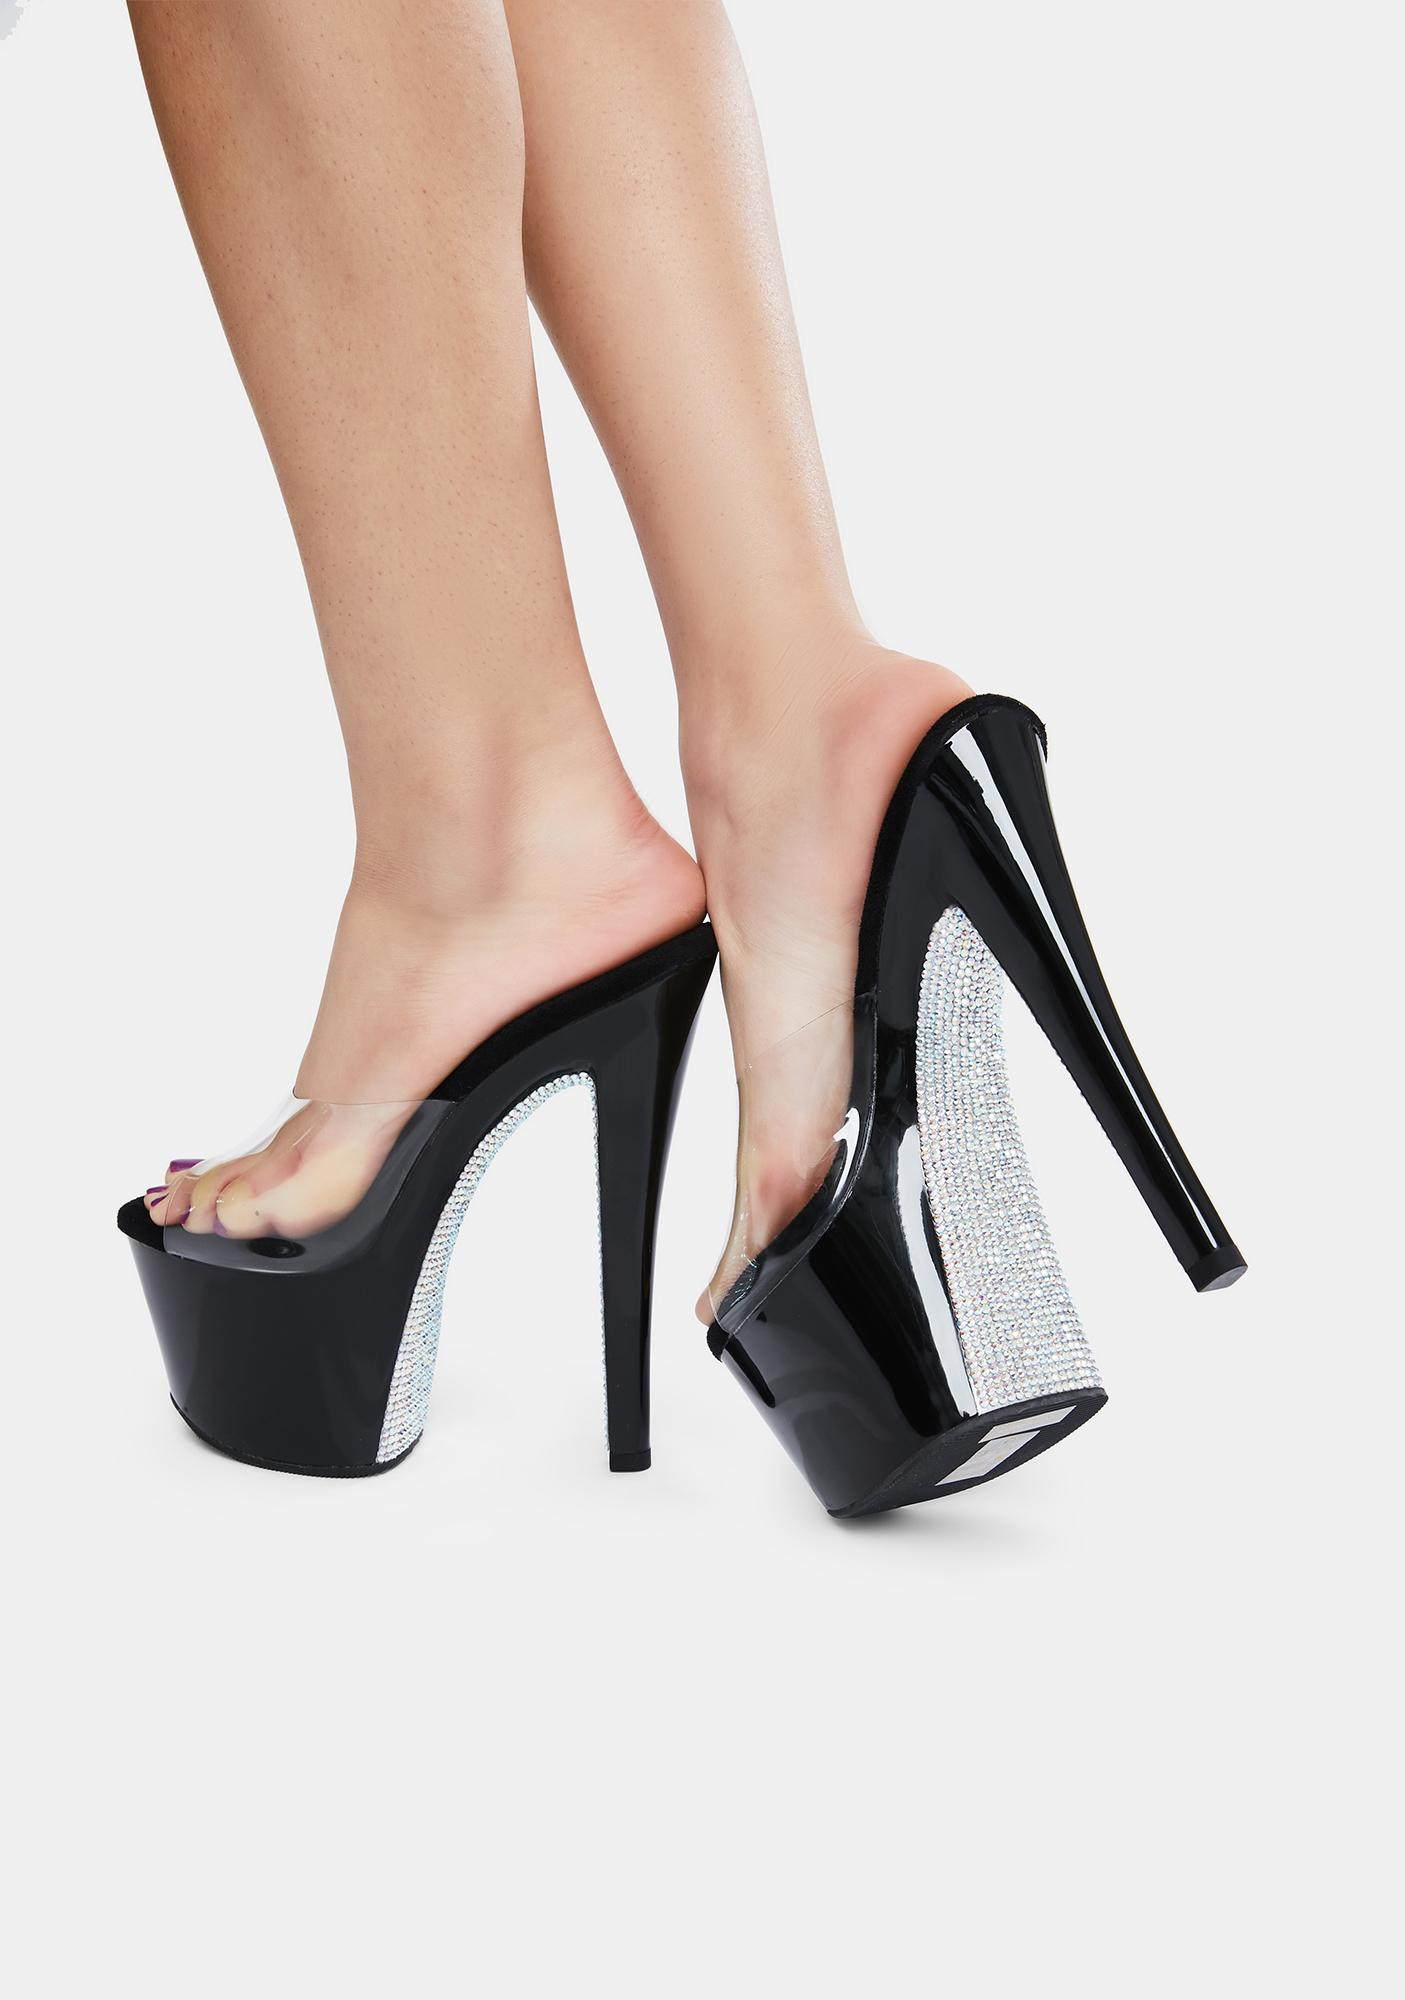 Pleaser Midnight Here's A Tip Platform Heels